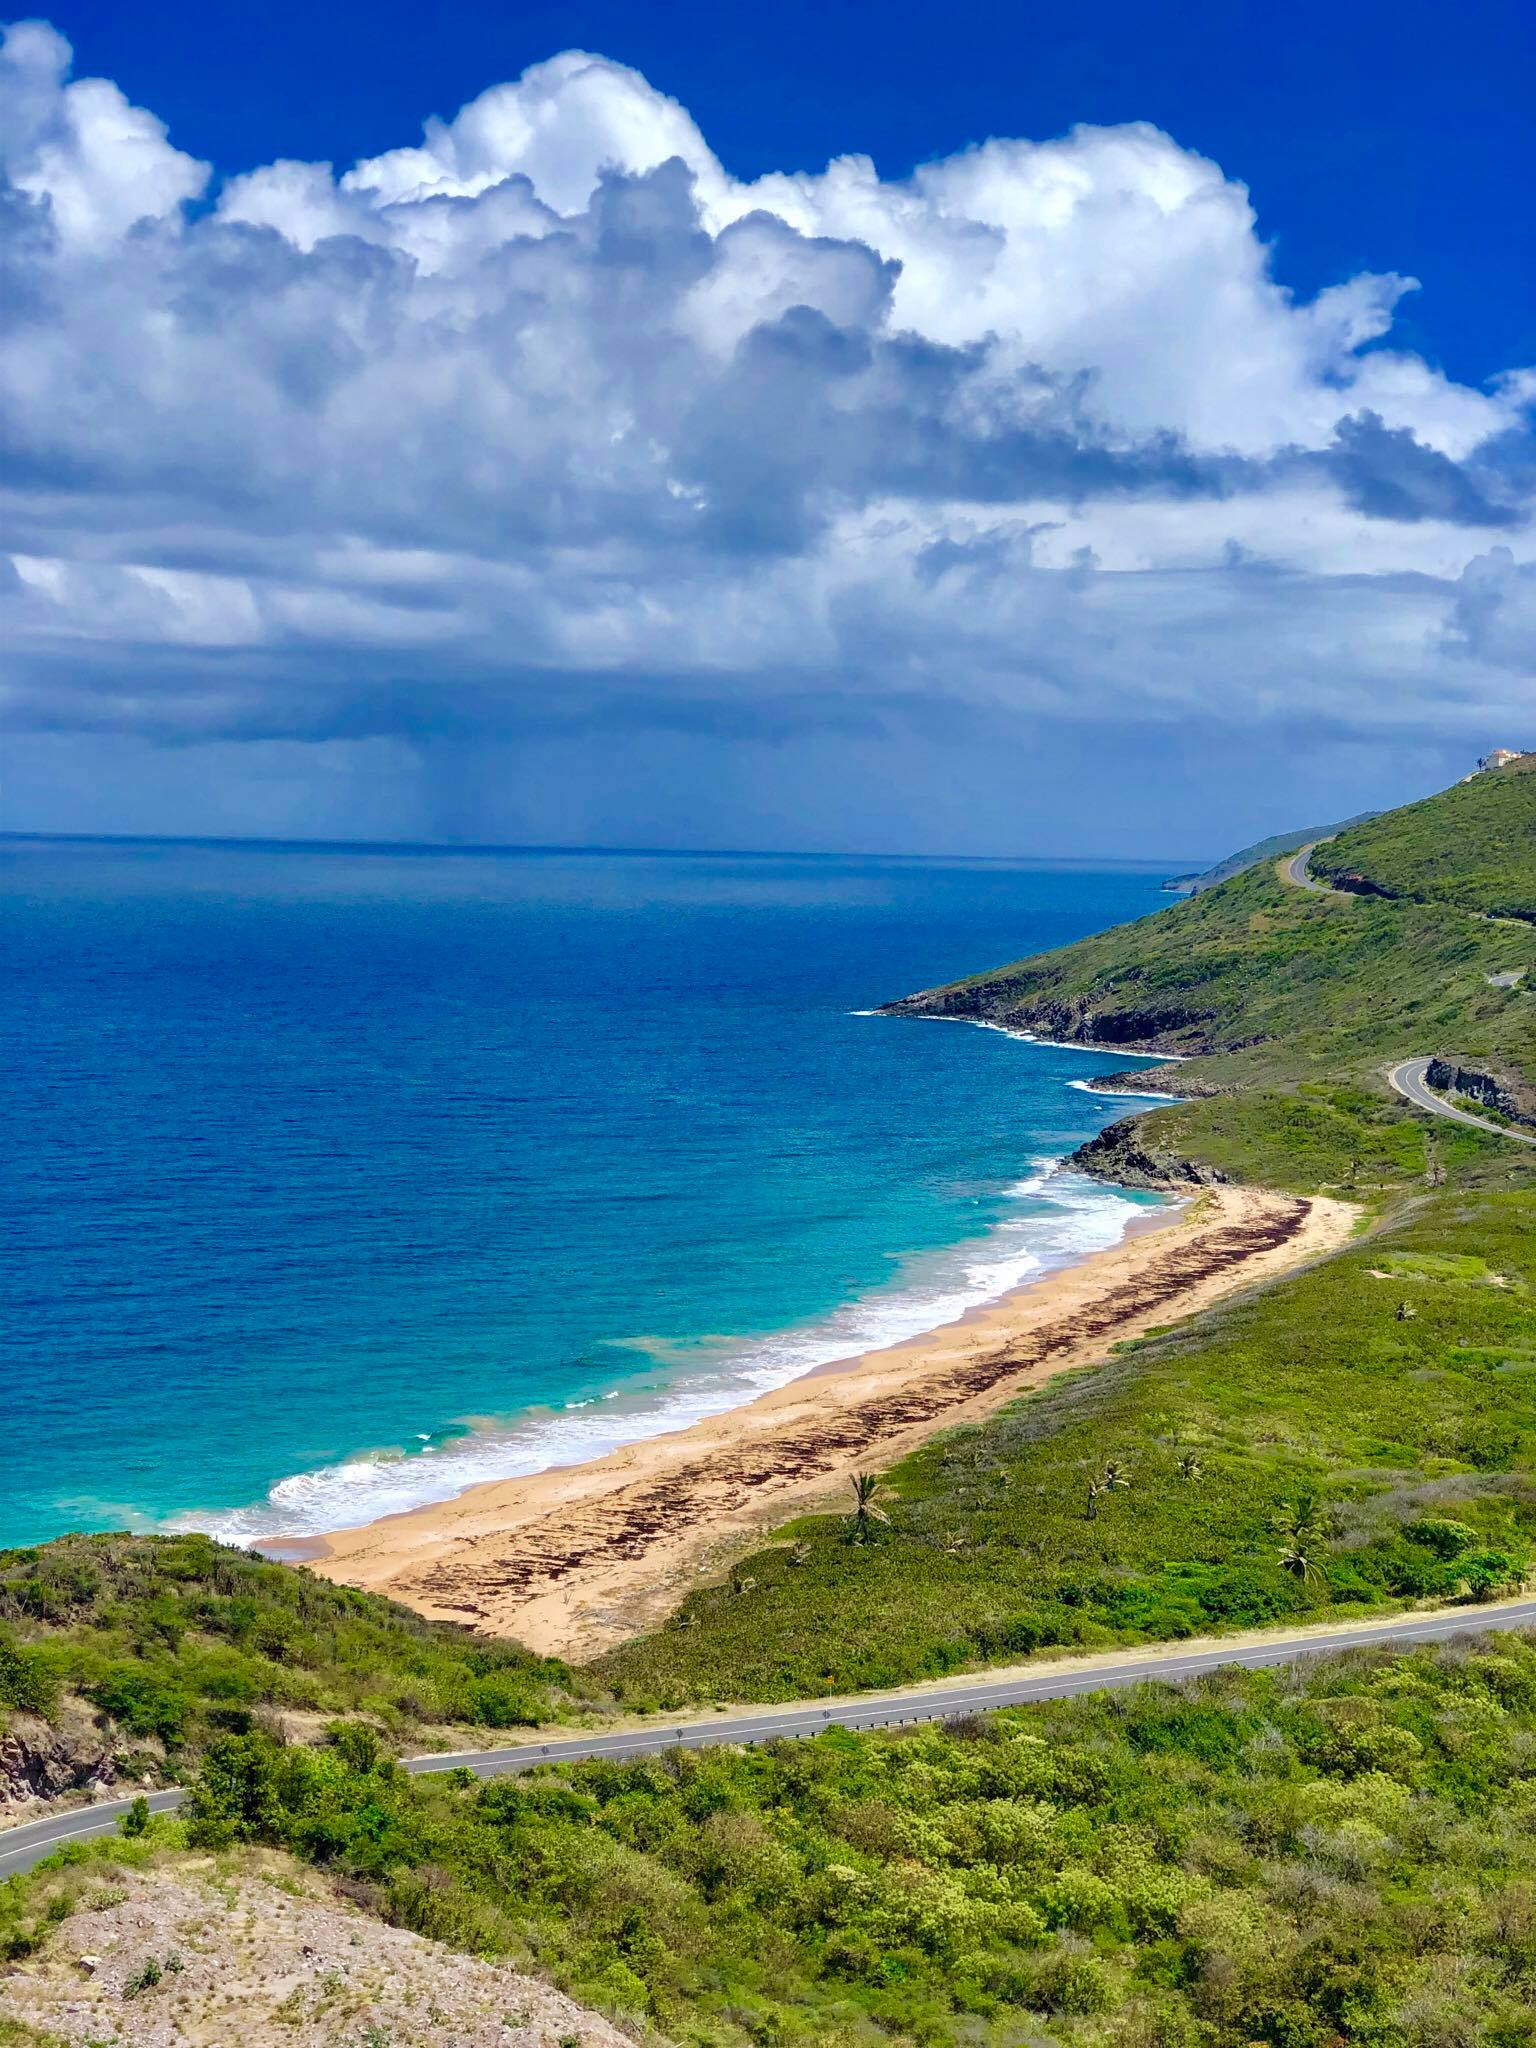 Kach Solo Travels in 2019 Hello from St Kitts 2.jpg